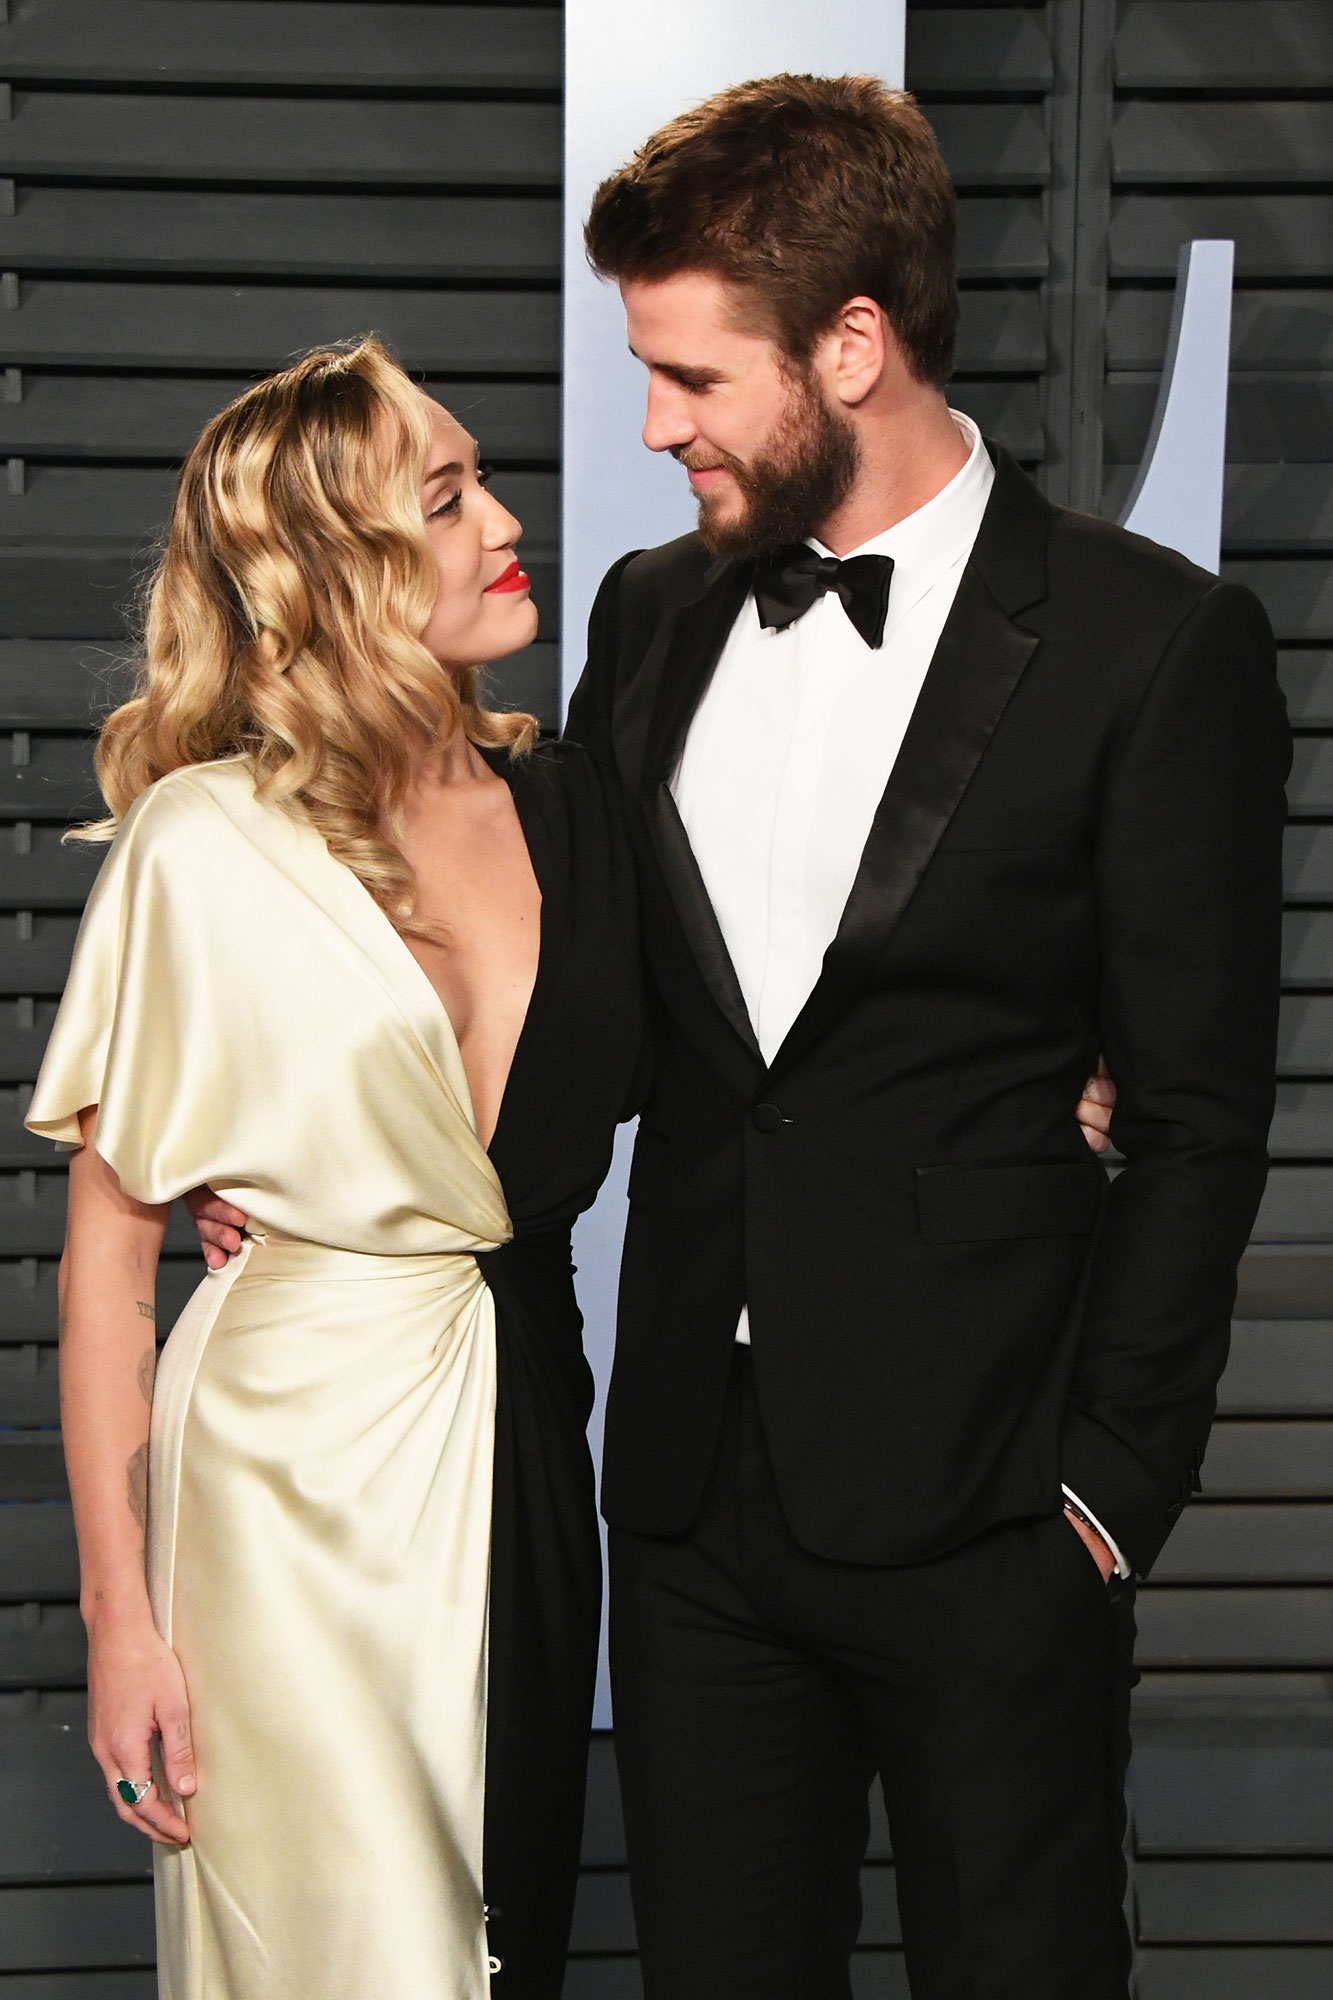 Miley Cyrus Liam Hemsworth - Miley Cyrus (L) and Liam Hemsworth attend the 2018 Vanity Fair Oscar Party hosted by Radhika Jones at Wallis Annenberg Center for the Performing Arts on March 4, 2018 in Beverly Hills, California.